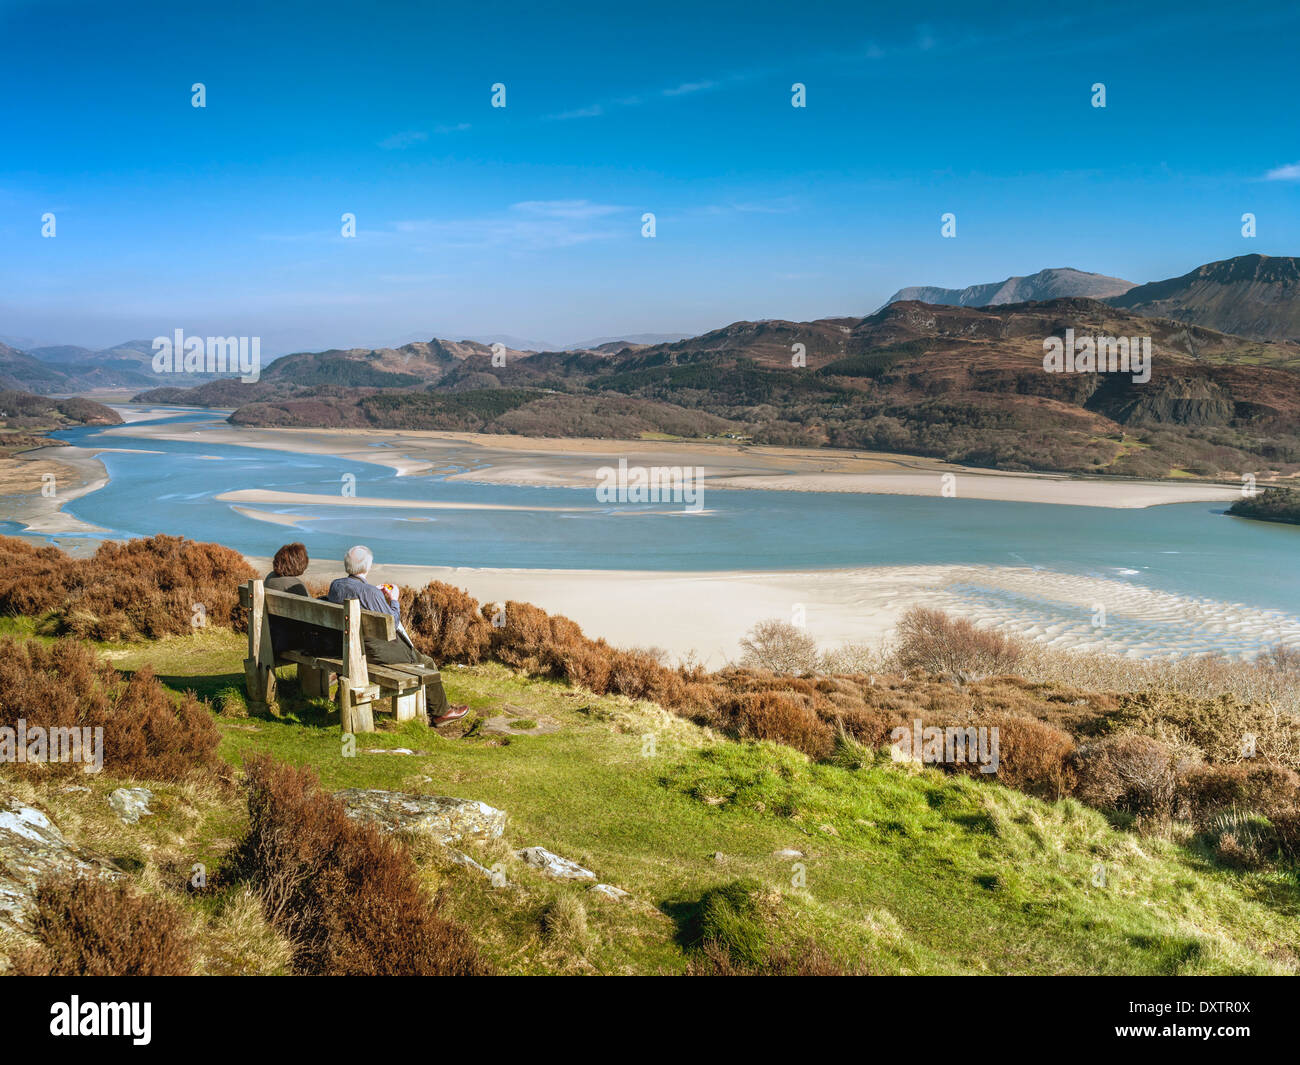 A retired couple seated on a bench at a viewpoint on Panorama Walk overlooking the Mawddach estuary and Cadair Idris range. - Stock Image